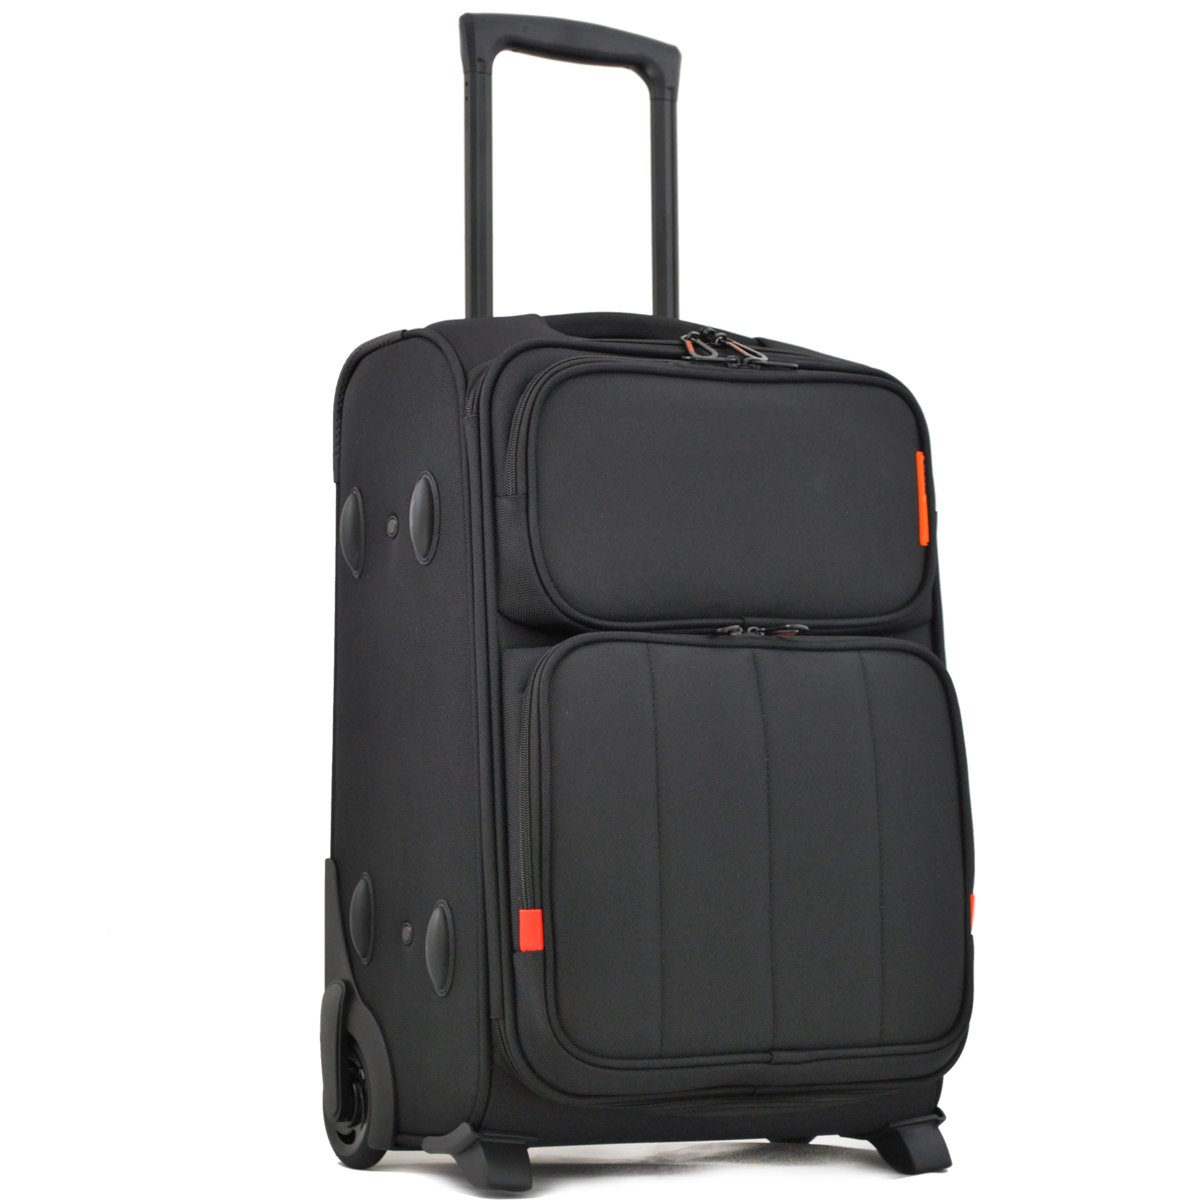 Valise trolley ou Bagage d'affaire The Chase DAVIDT'S - Noir